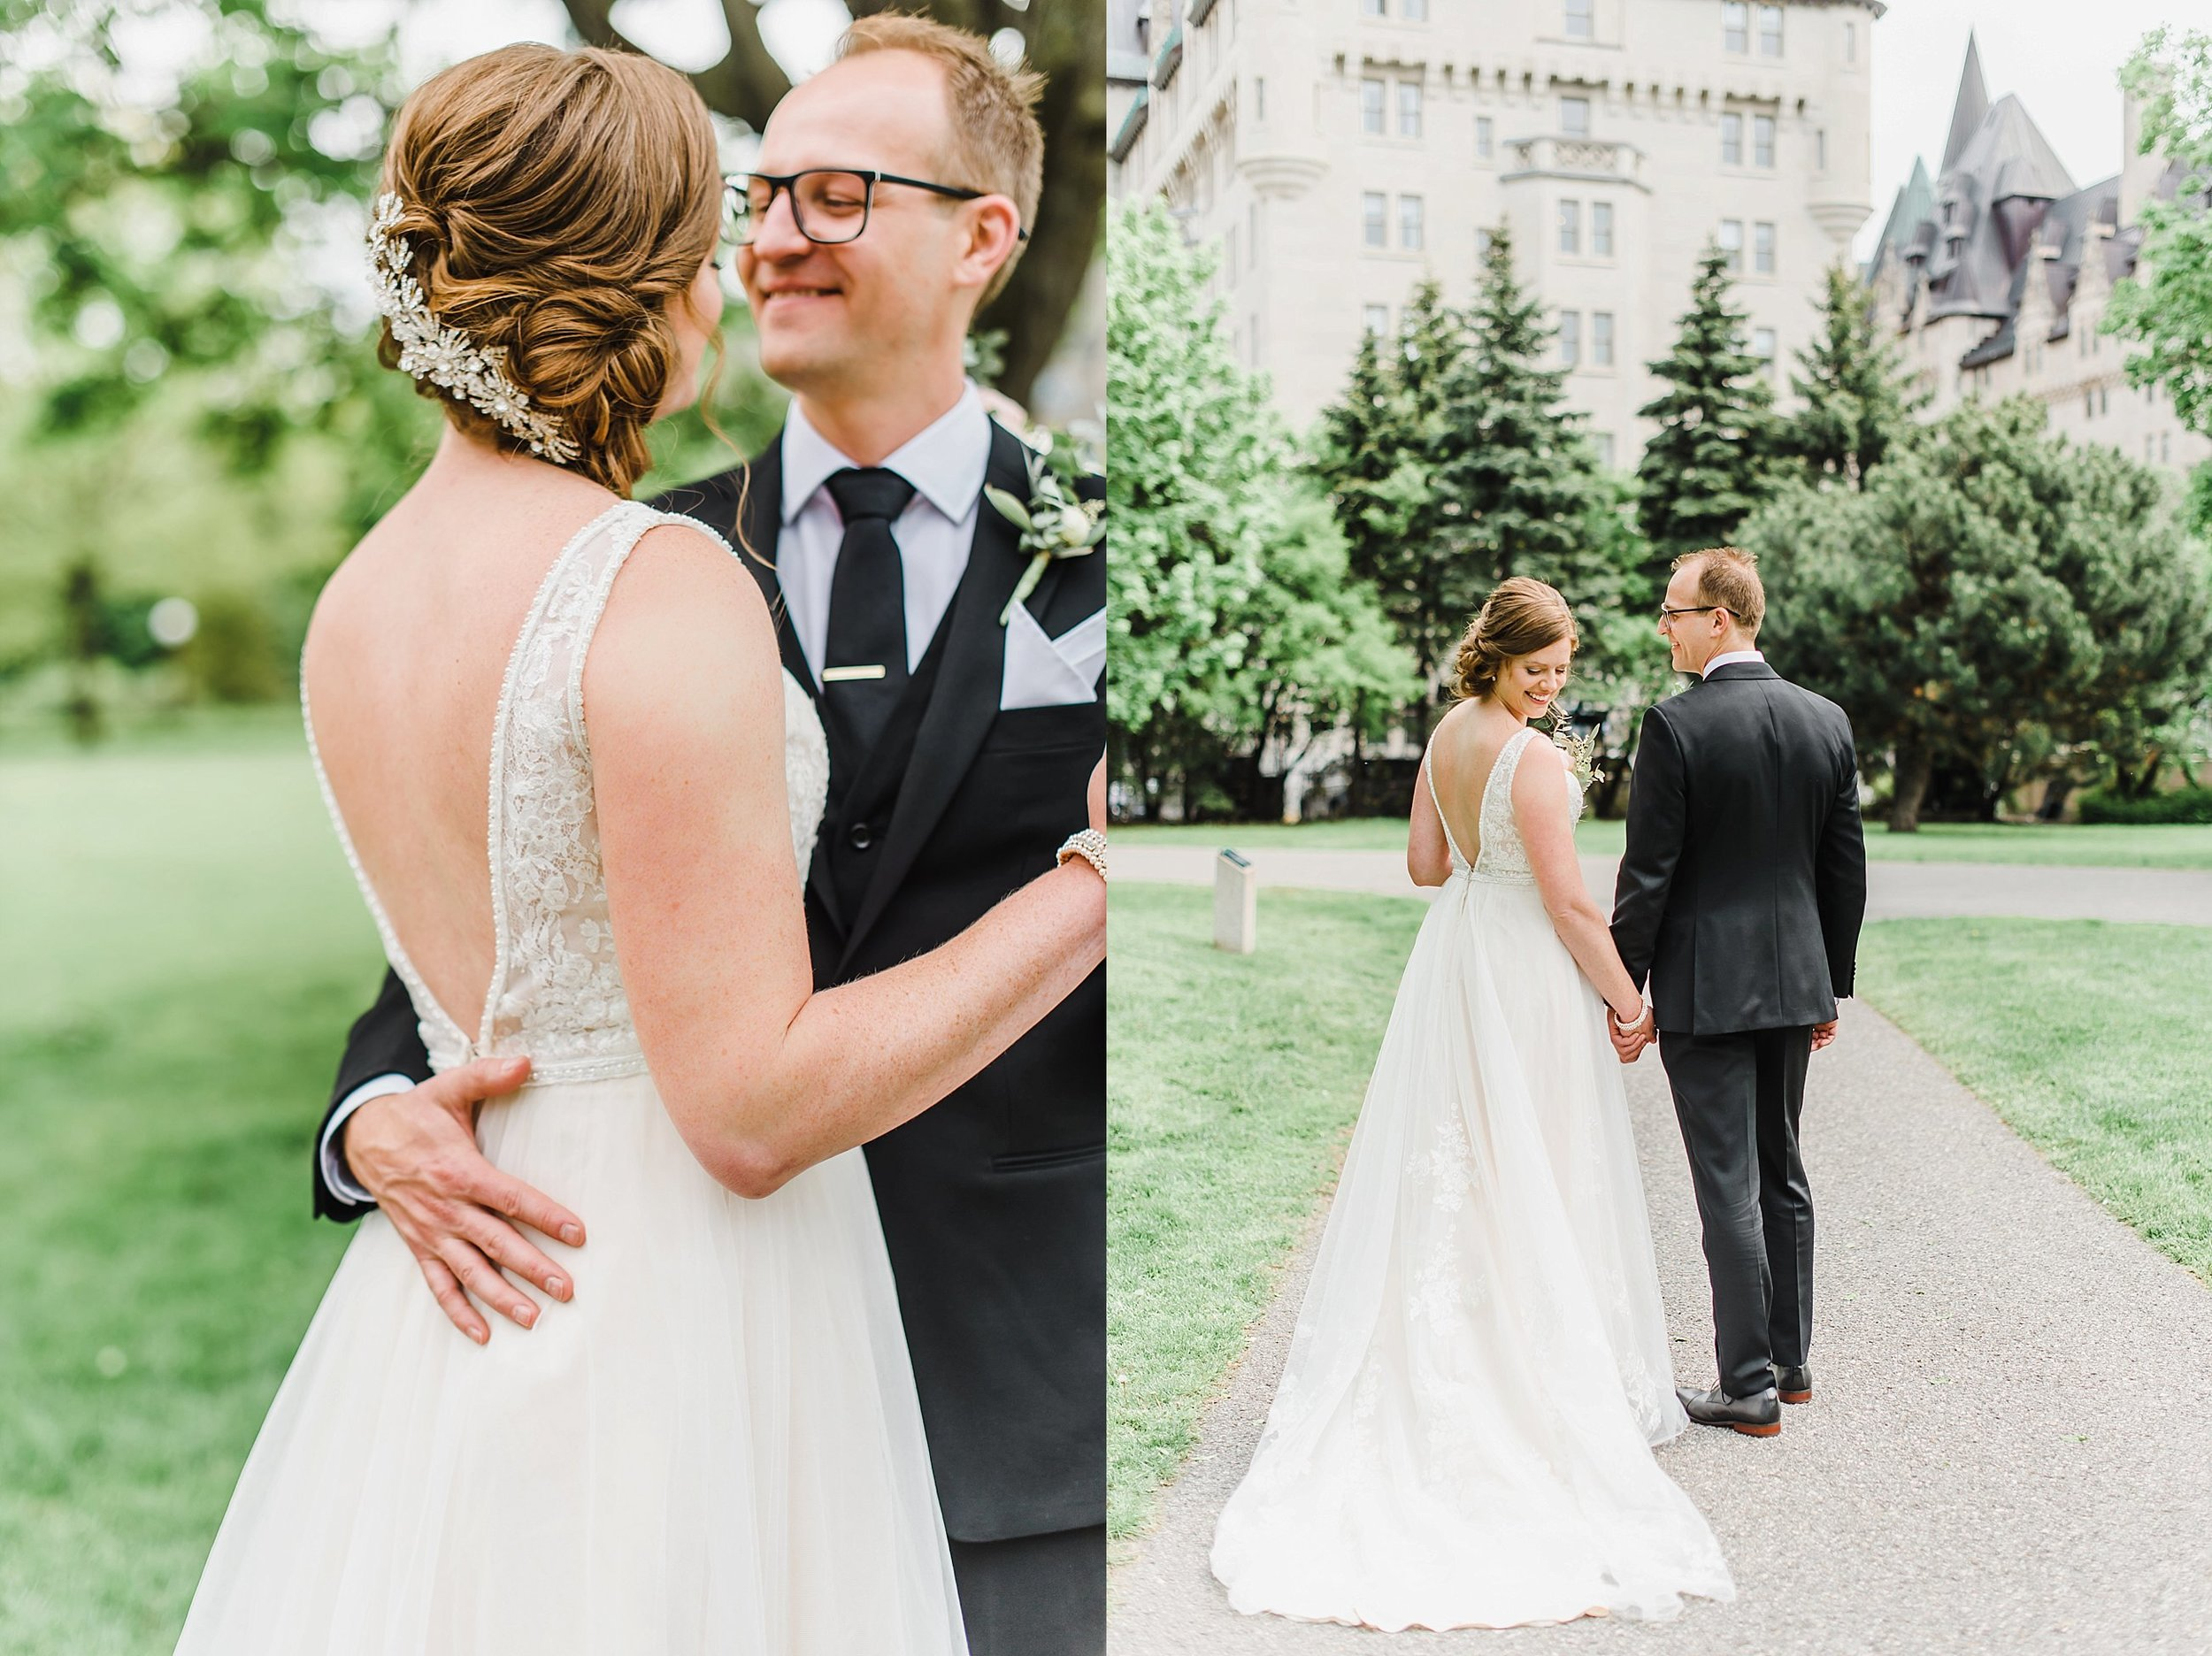 light airy indie fine art ottawa wedding photographer | Ali and Batoul Photography_0319.jpg